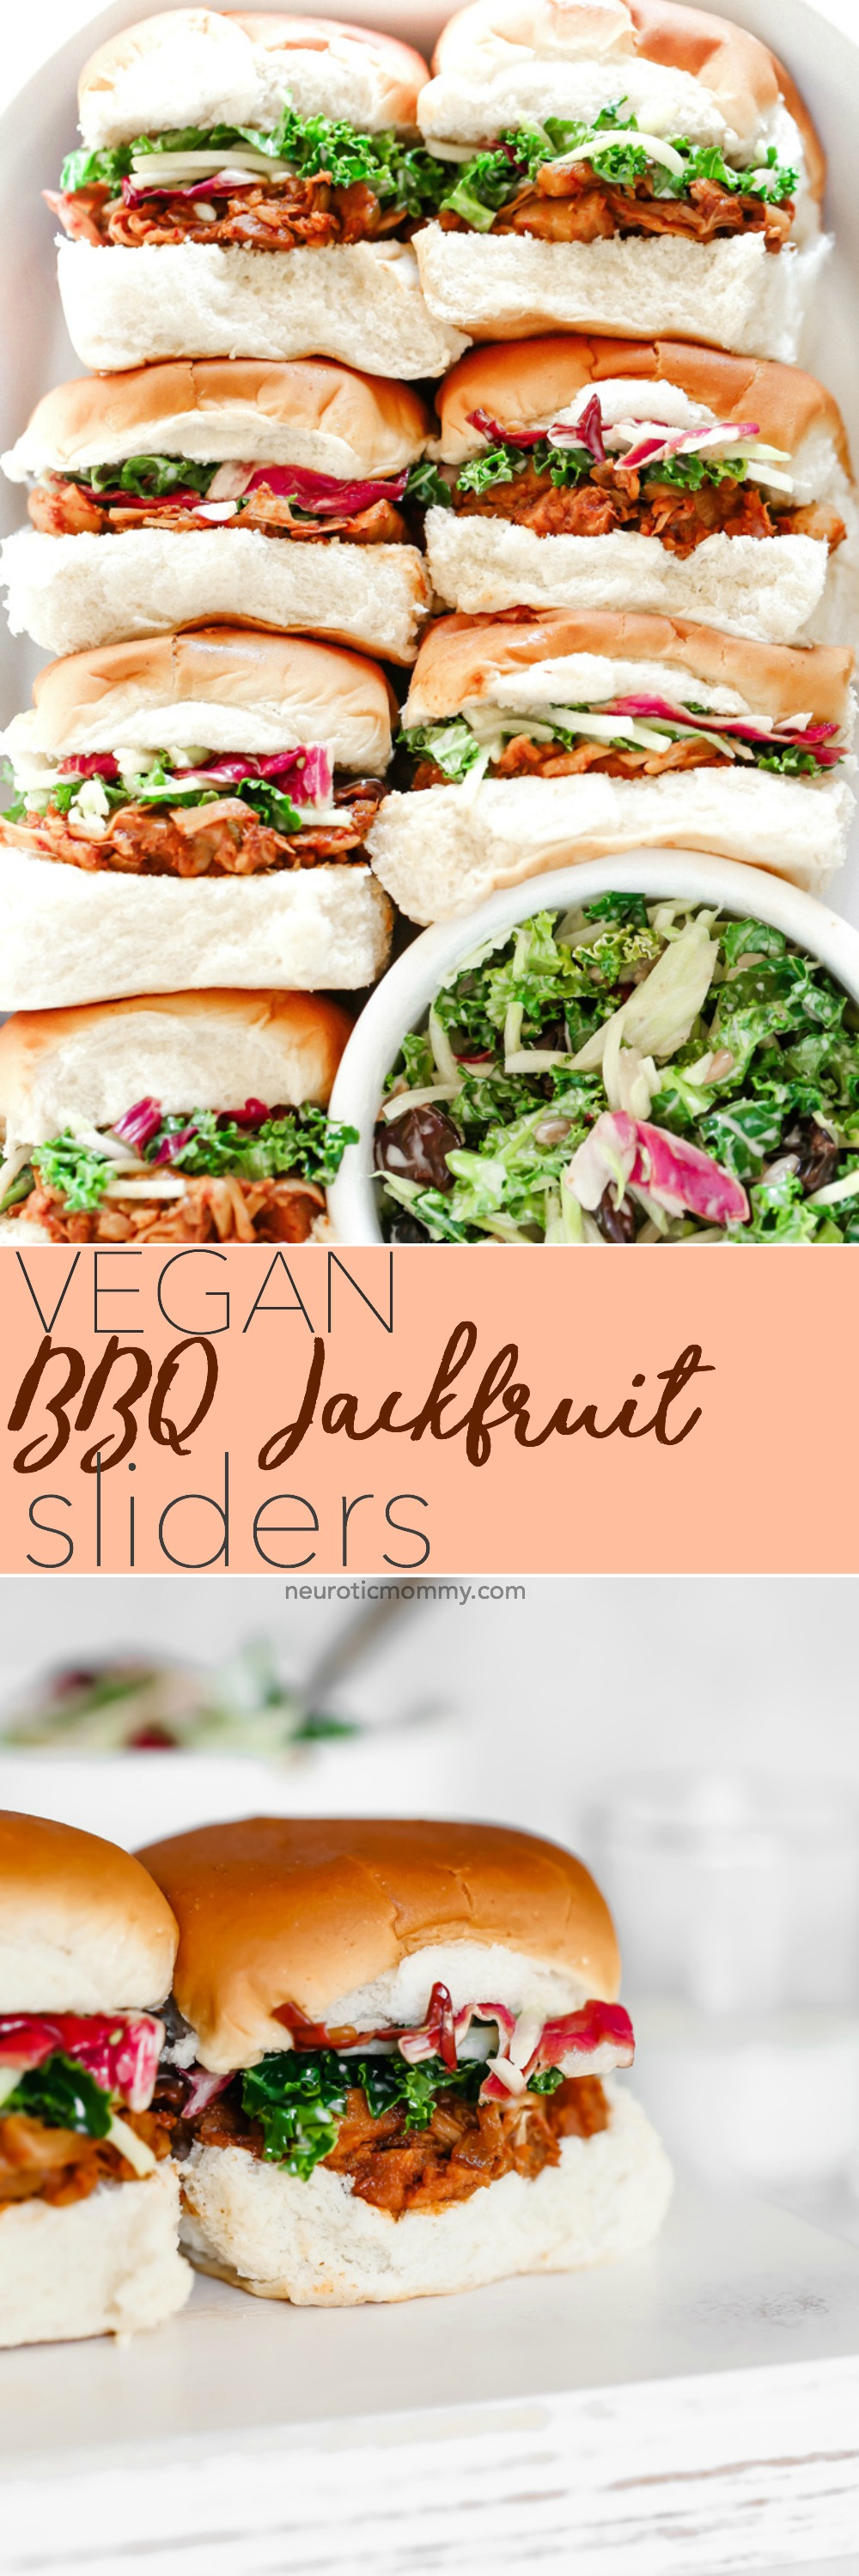 Vegan BBQ Jackfruit Sliders - These are so good. The jackfruit is super tender and it all sort of melts in your mouth. Paired with a cool coleslaw and option to meal prep. NeuroticMommy.com #vegansliders #bbqjackfruit